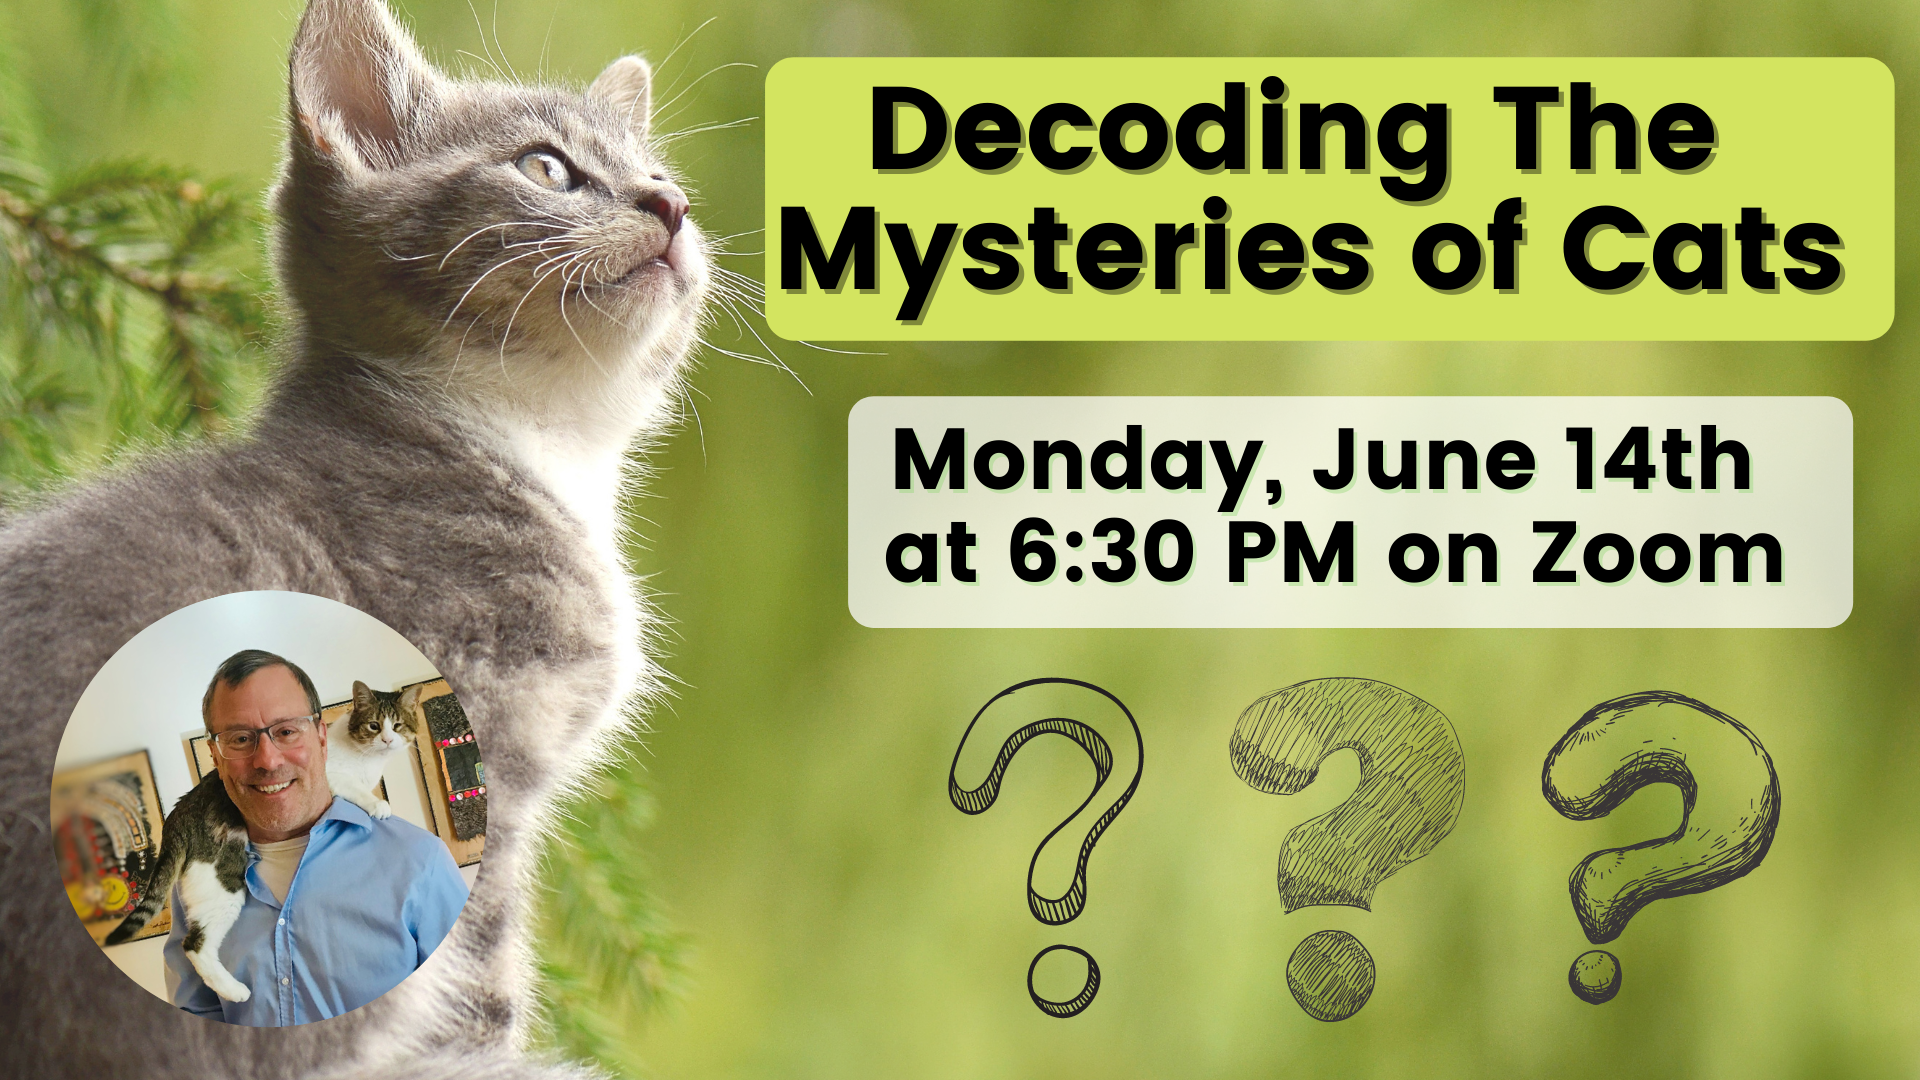 Decoding the mysteries of cats